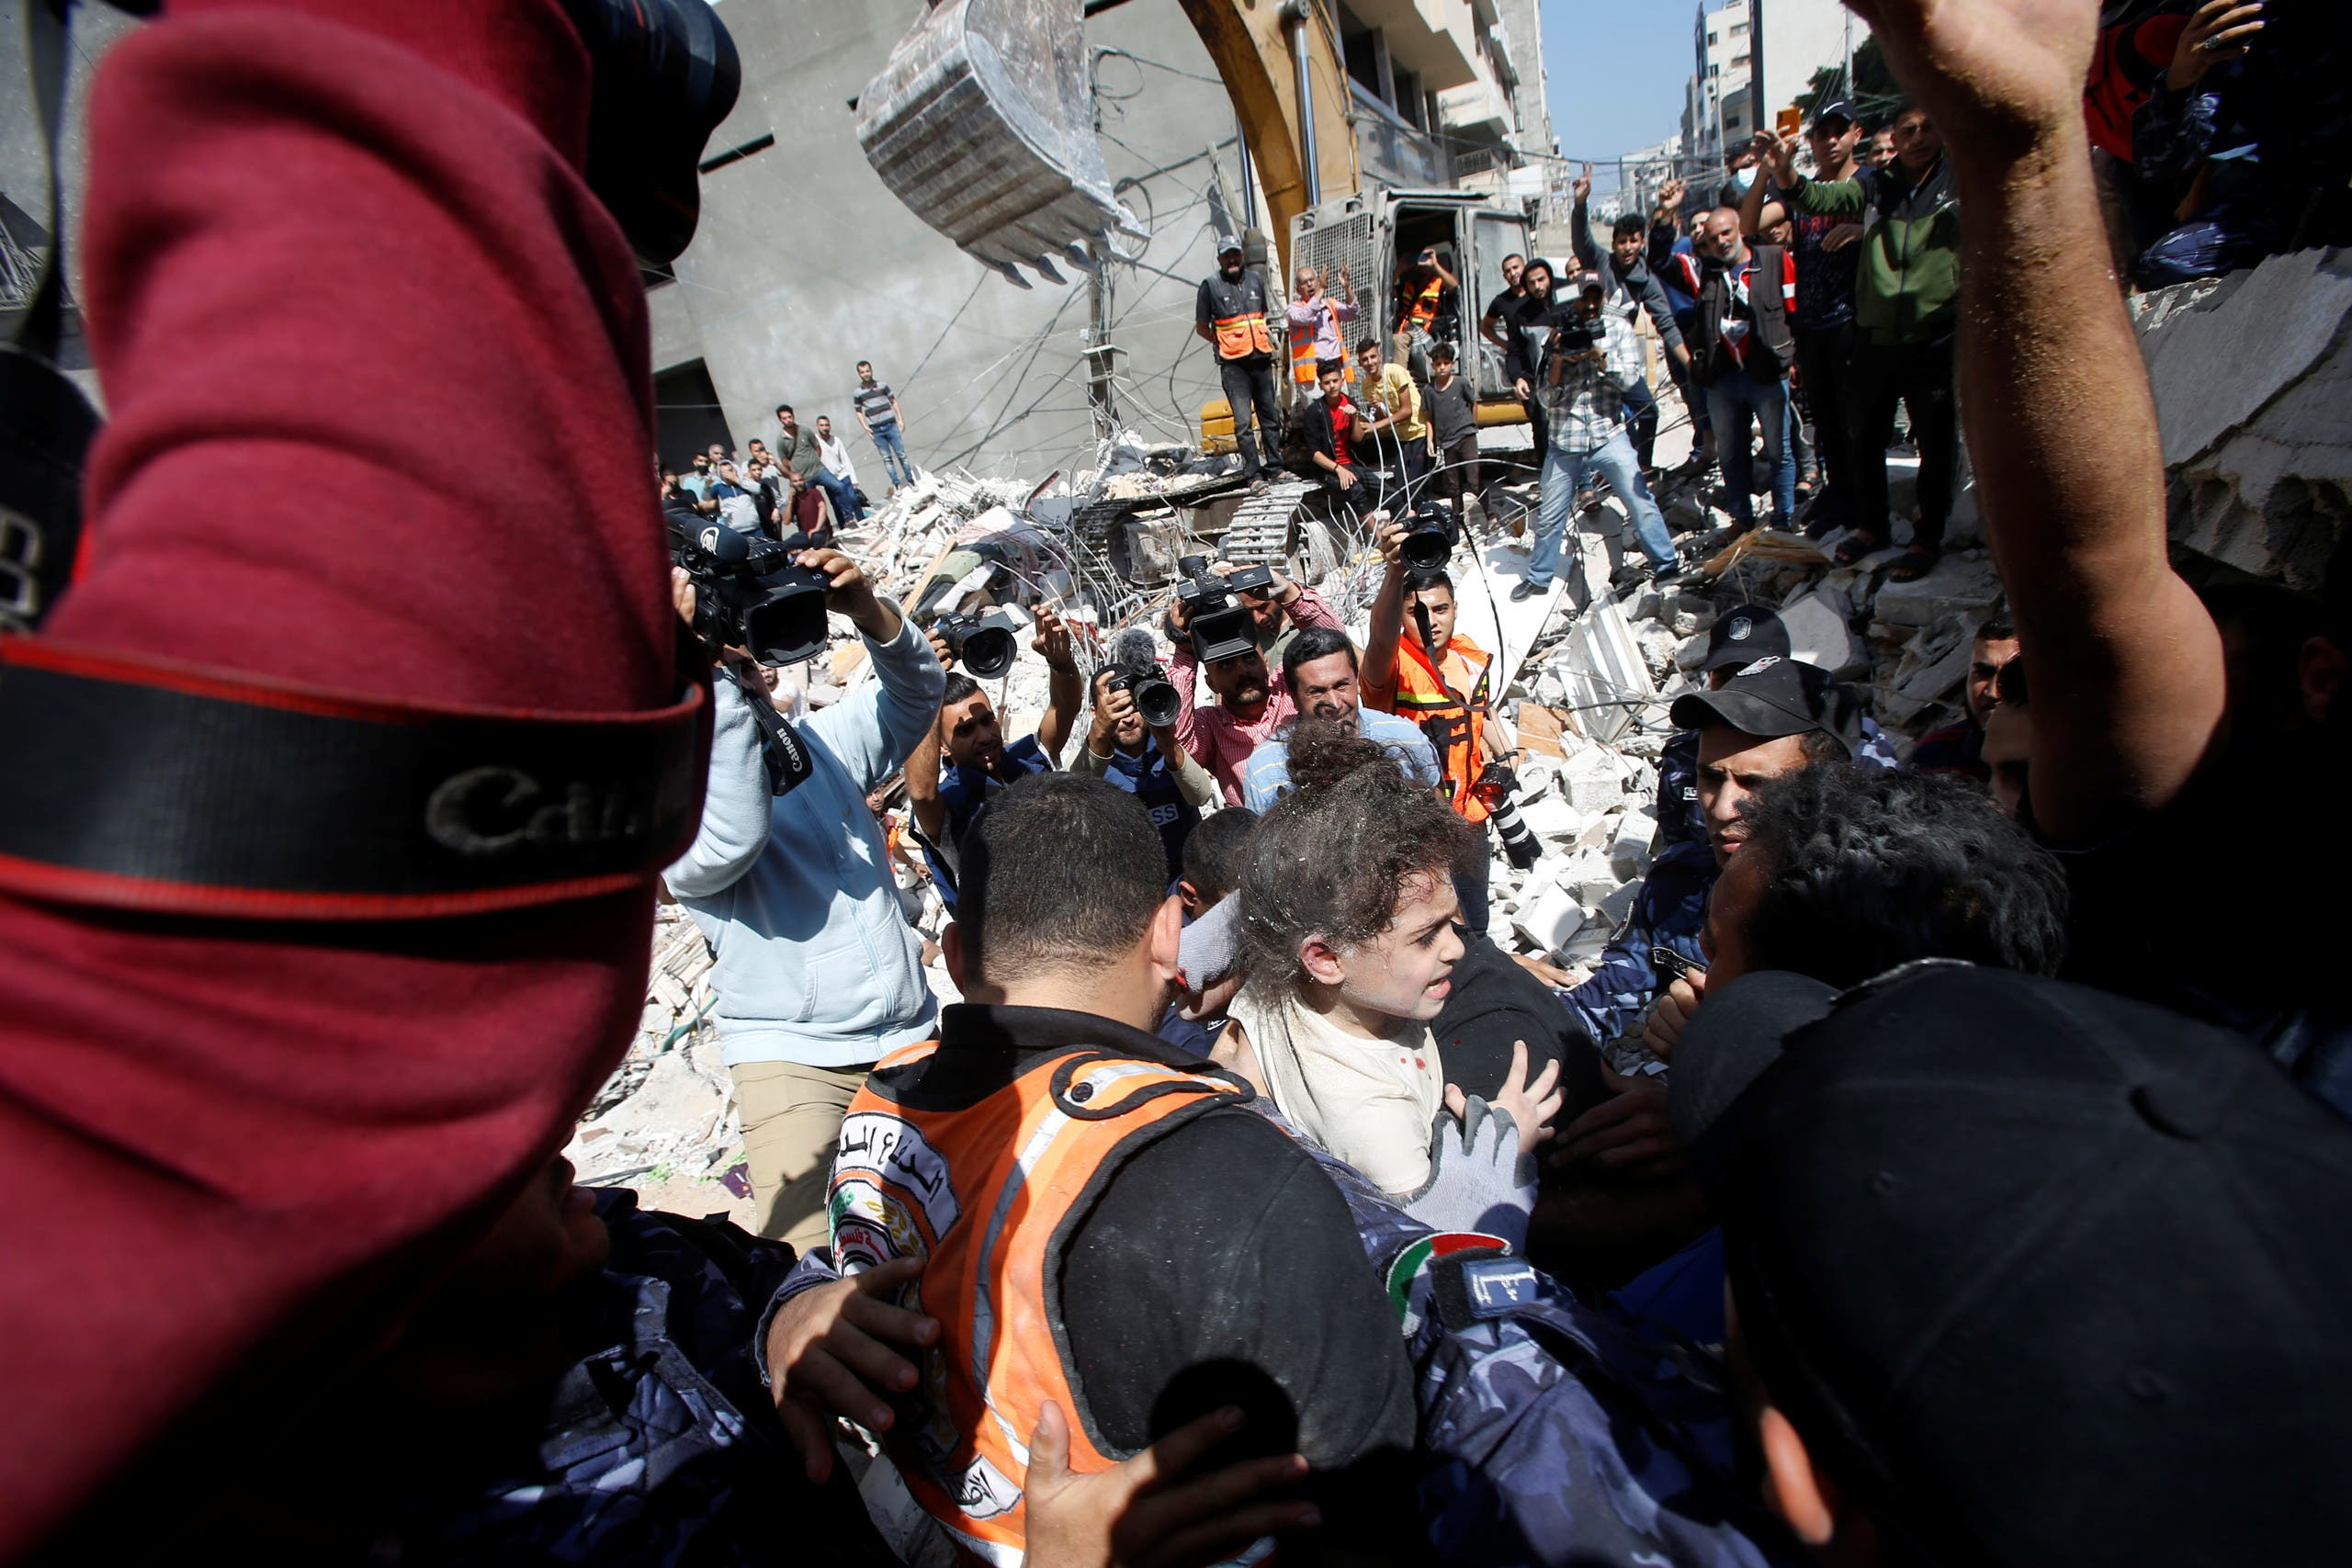 Rescuers carry Suzy Eshkuntana, 6, as they pull her from the rubble of a building at the site of Israeli air strikes, in Gaza City May 16, 2021. (Reuters)